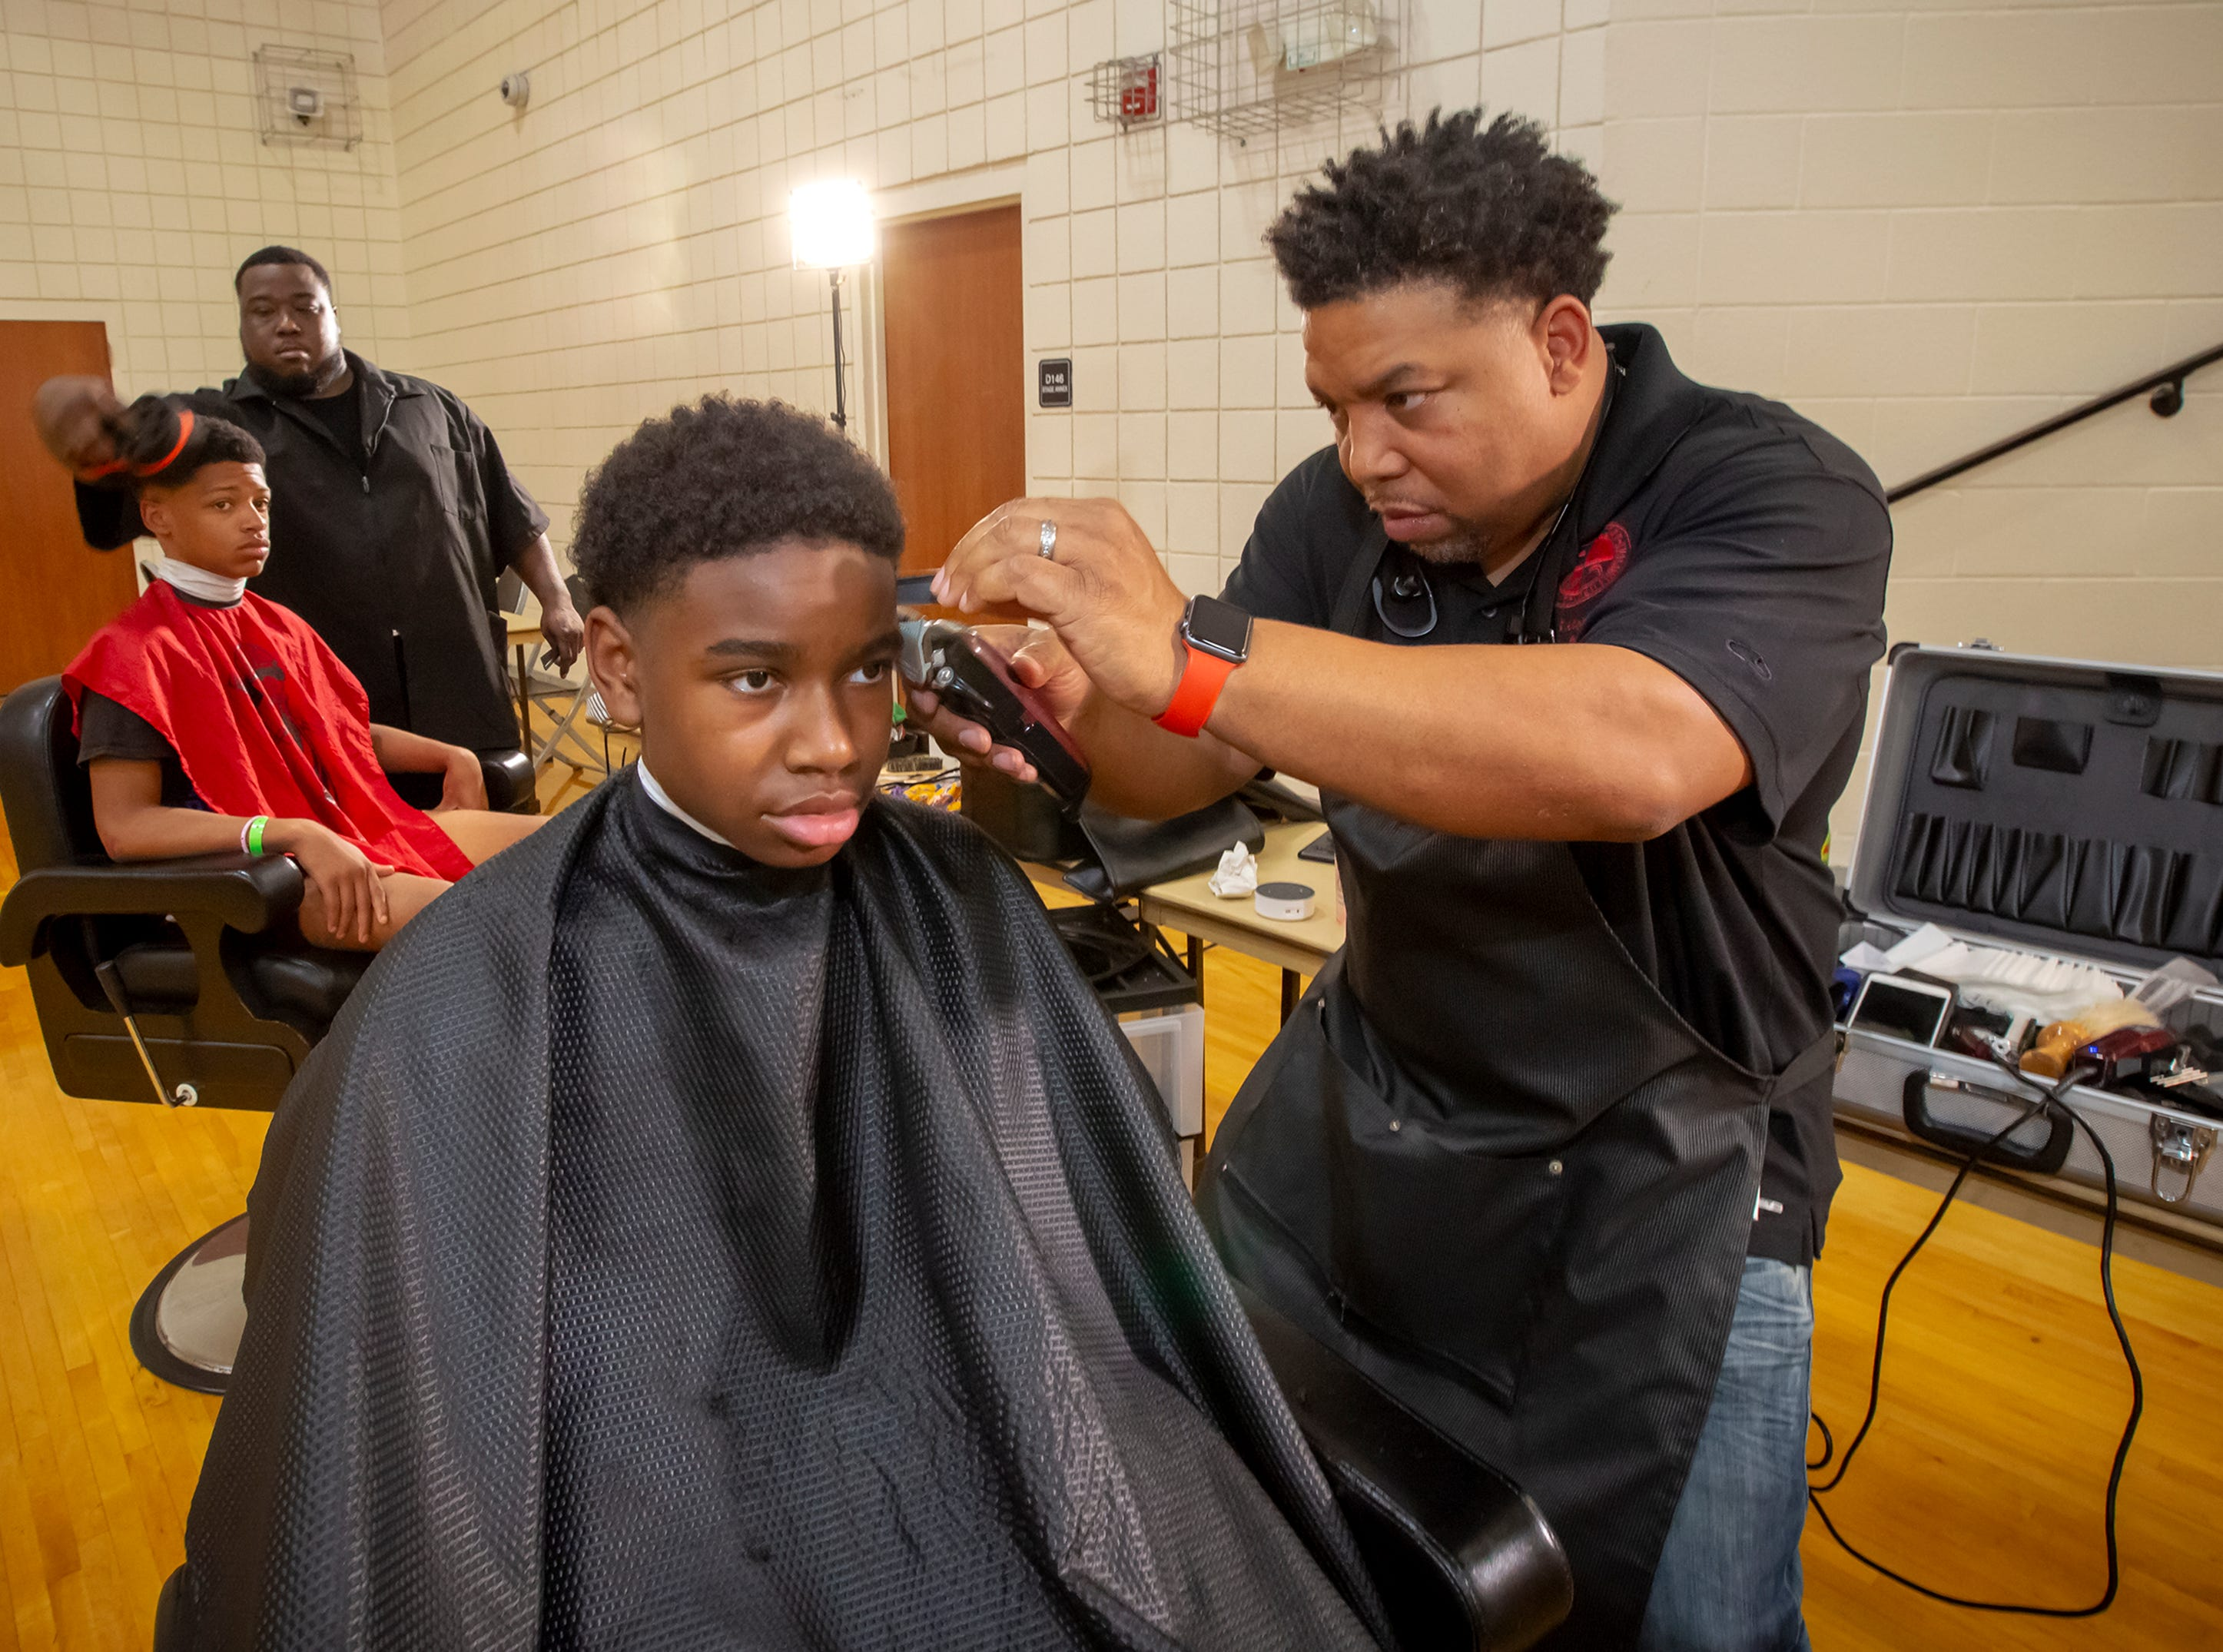 Area barbers provided free haircuts at the National Night Out celebration held at Patterson Park Community Center in Murfreesboro on Tuesday, Aug. 7.